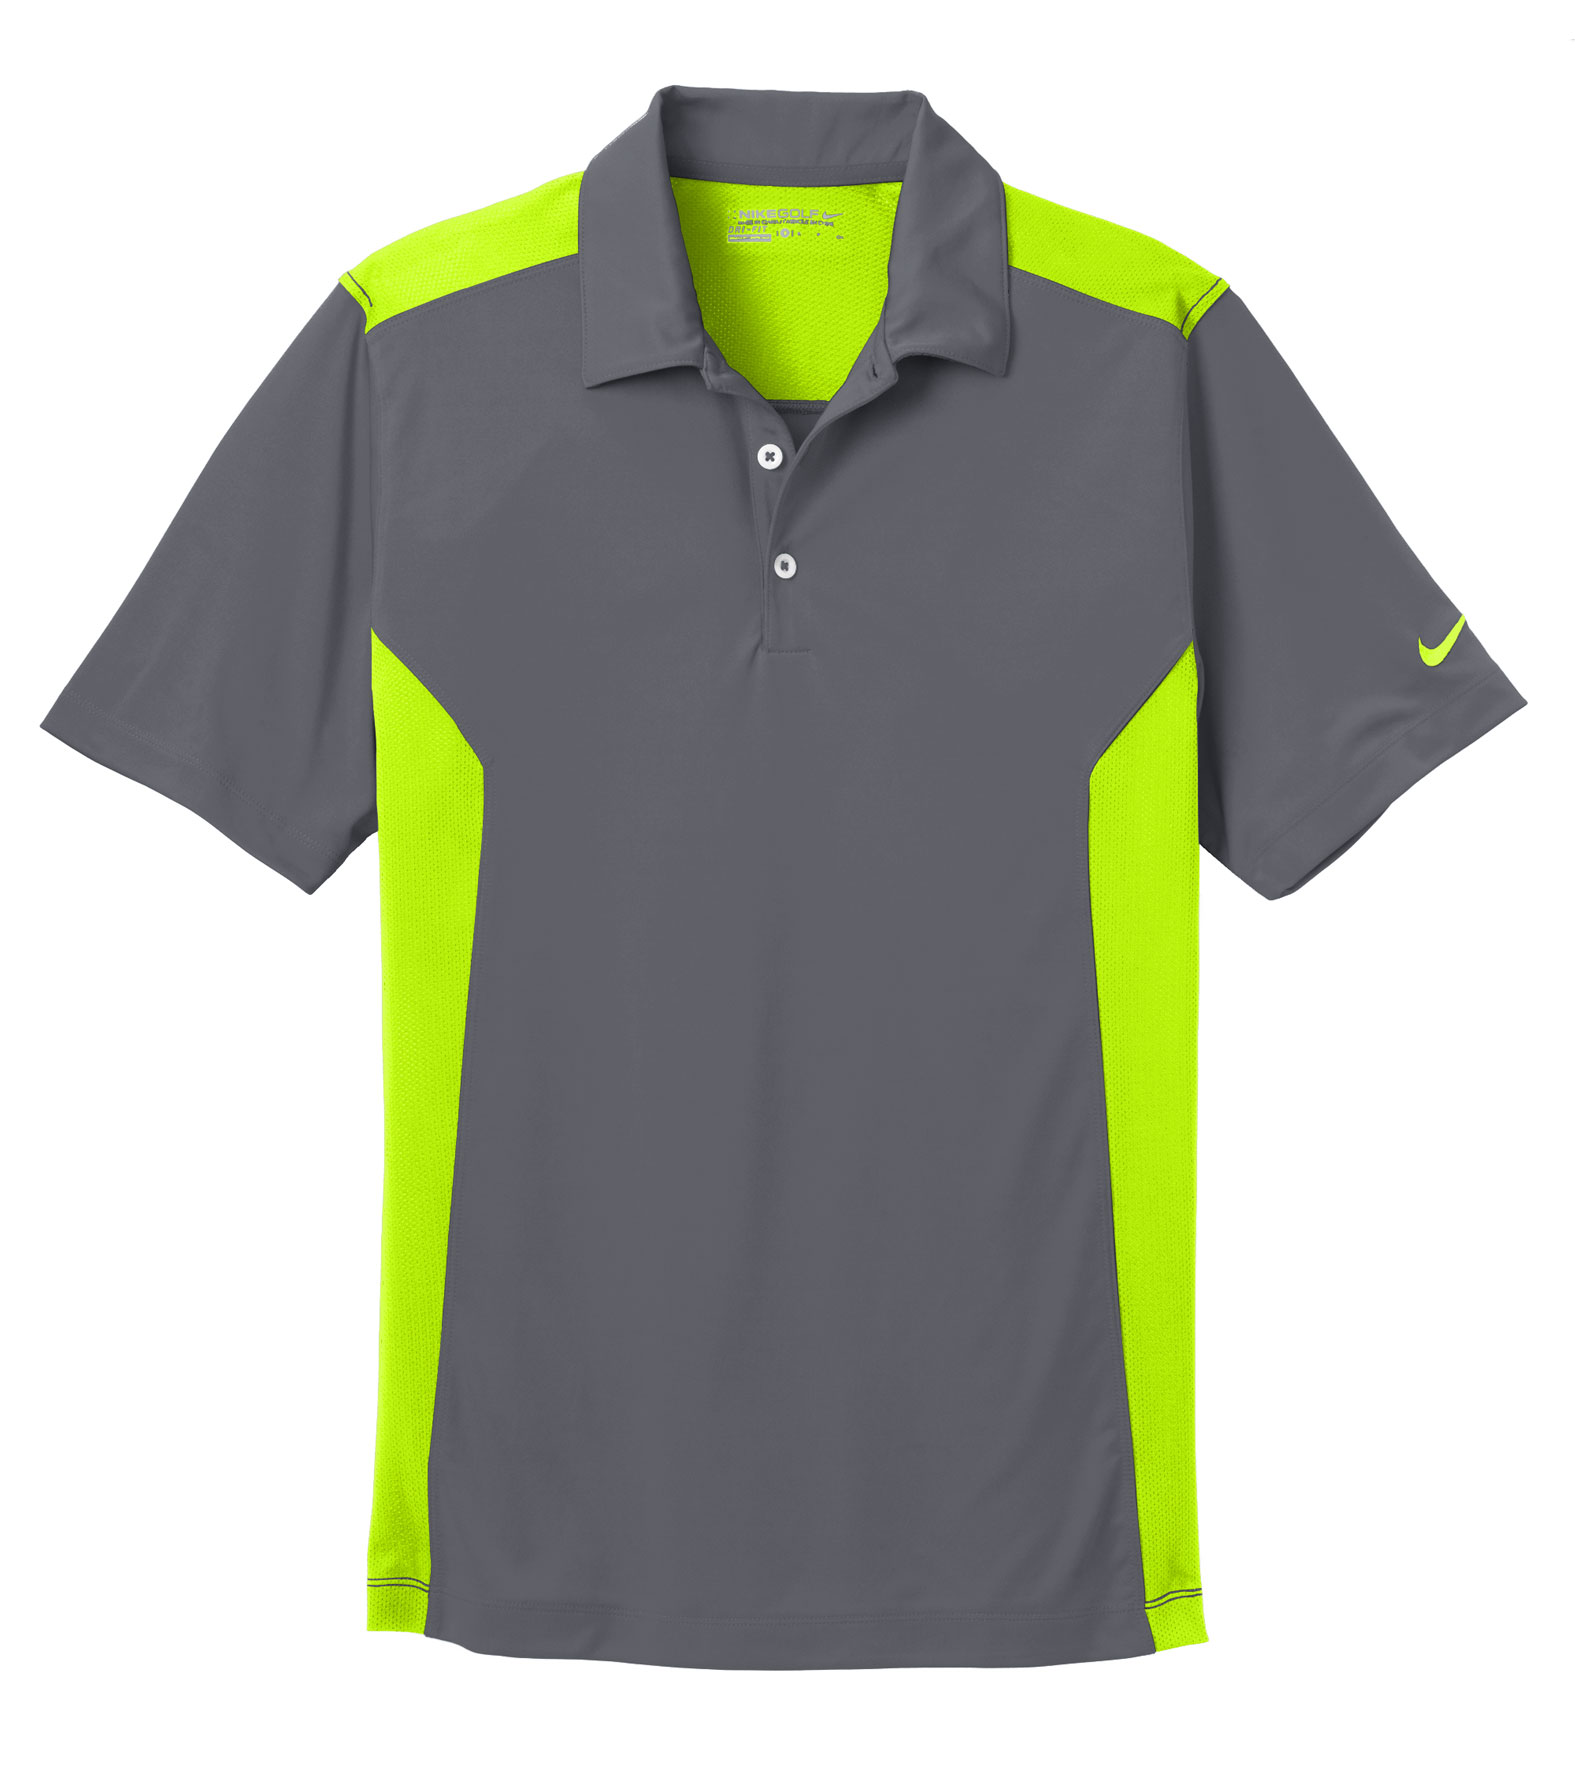 Nike Golf Mens Dri-FIT Engineered Mesh Polo